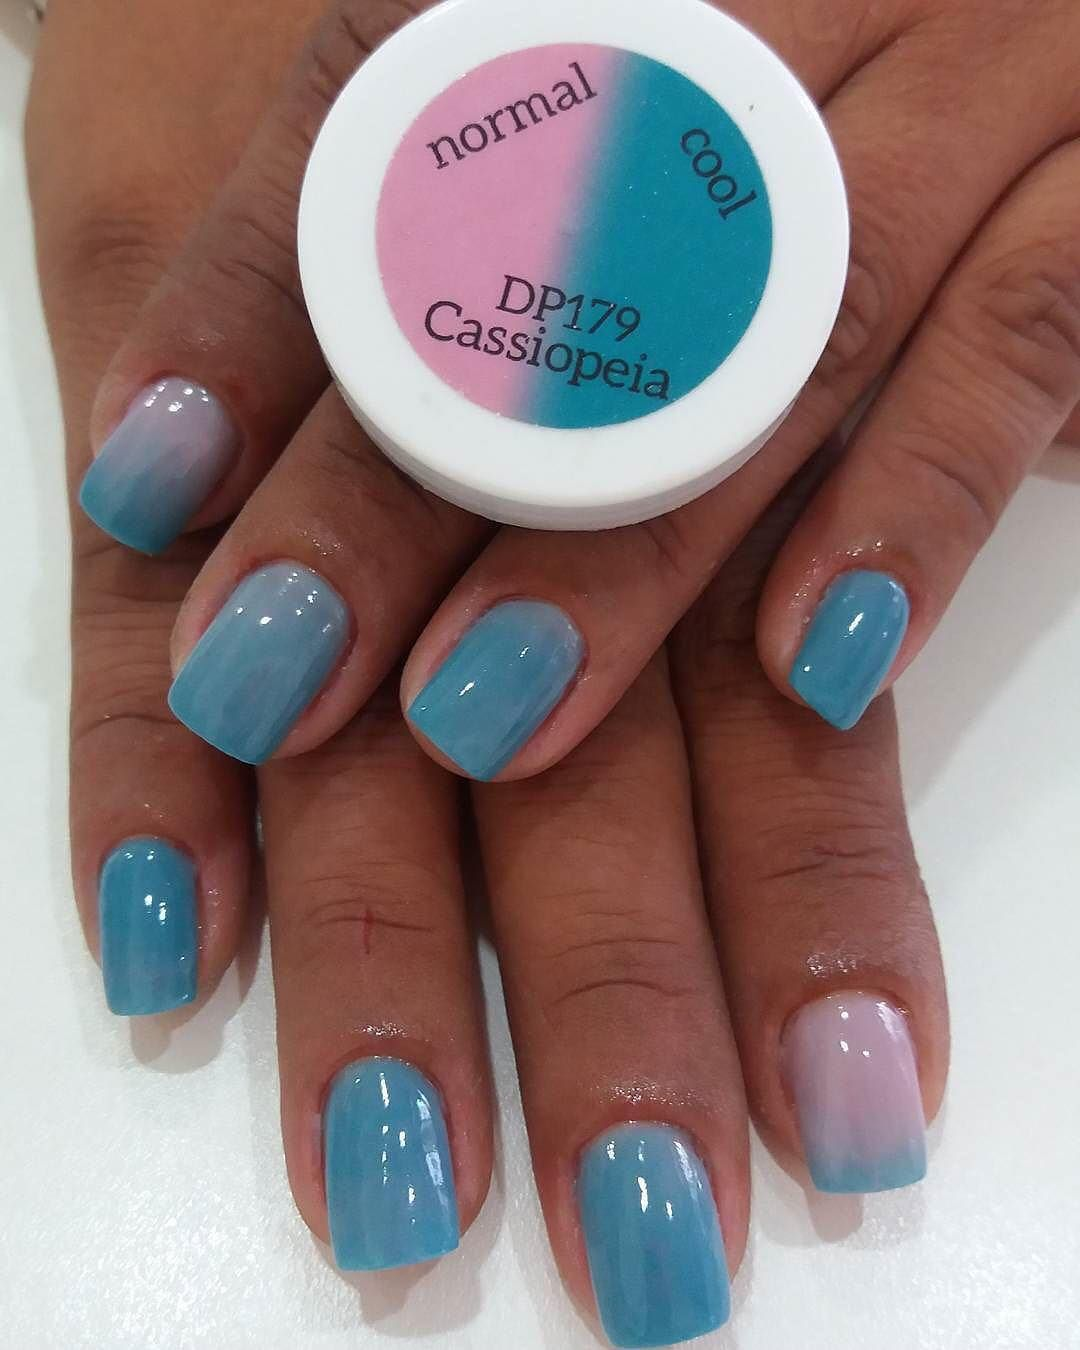 sandrasilva4963 is excited about her Revel Nail Mood Changing Dip ...